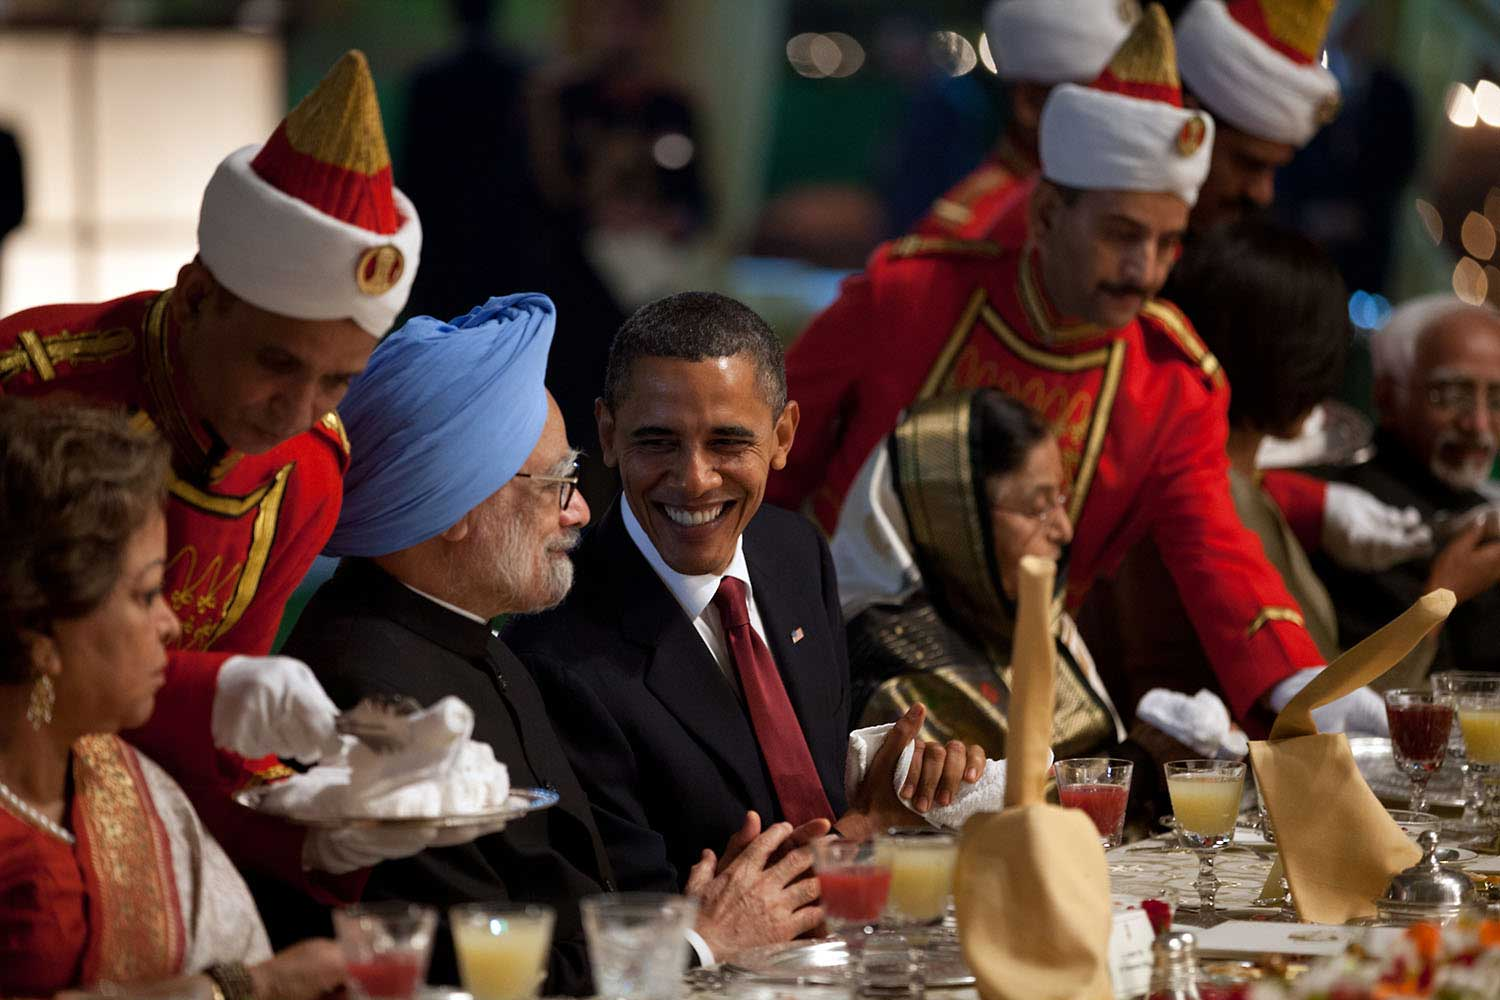 President Obama talks with Prime Minster of India Manmohan Singh during a the State Dinner at Rashtrapati Bhavan, the presidential palace, in New Dehli, India, Nov. 8, 2010.